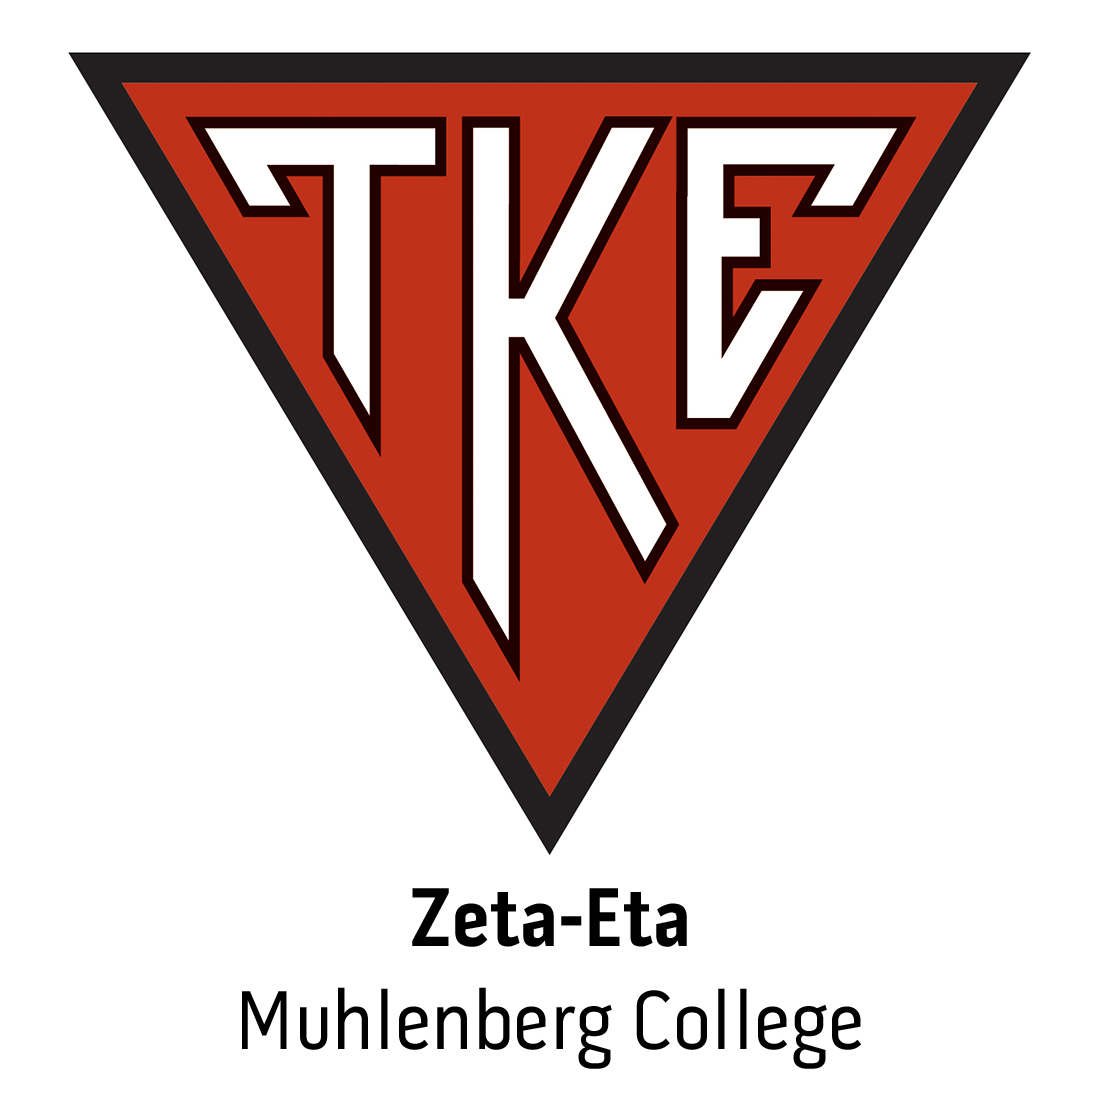 Zeta-Eta Chapter at Muhlenberg College